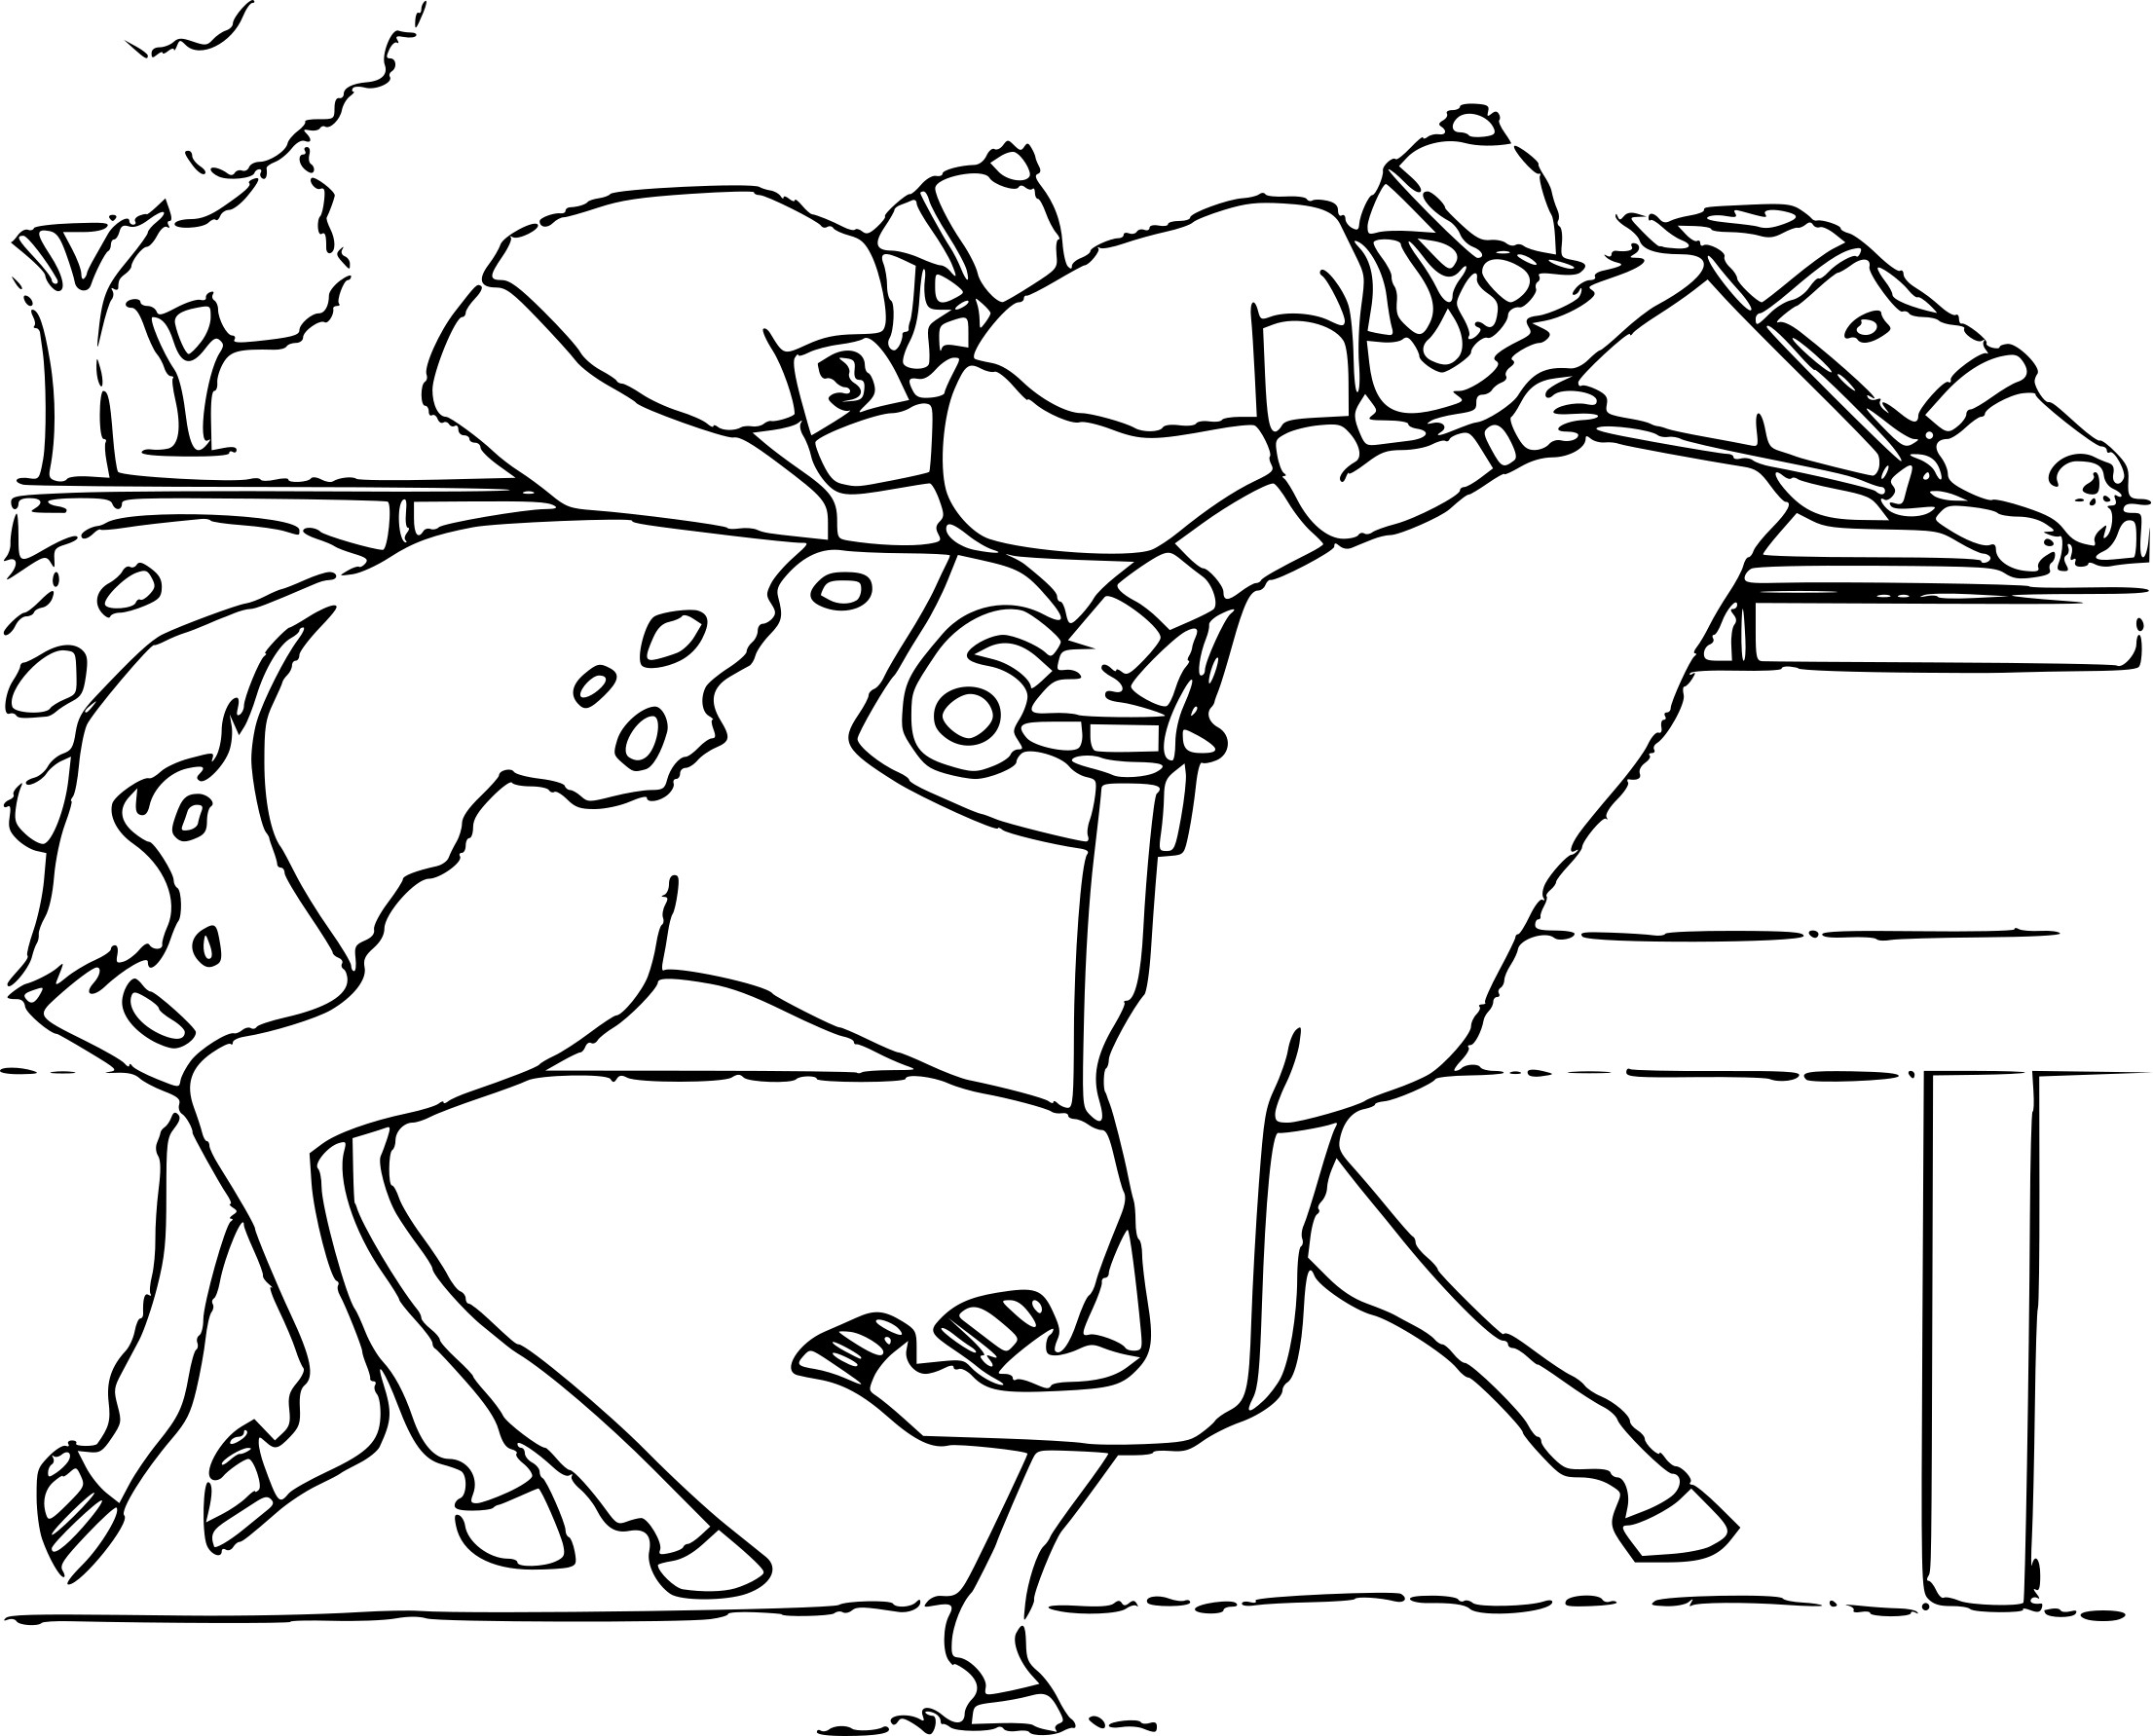 Coloriage Course De Cheval À Imprimer Sur Coloriages serapportantà Image De Cheval A Colorier